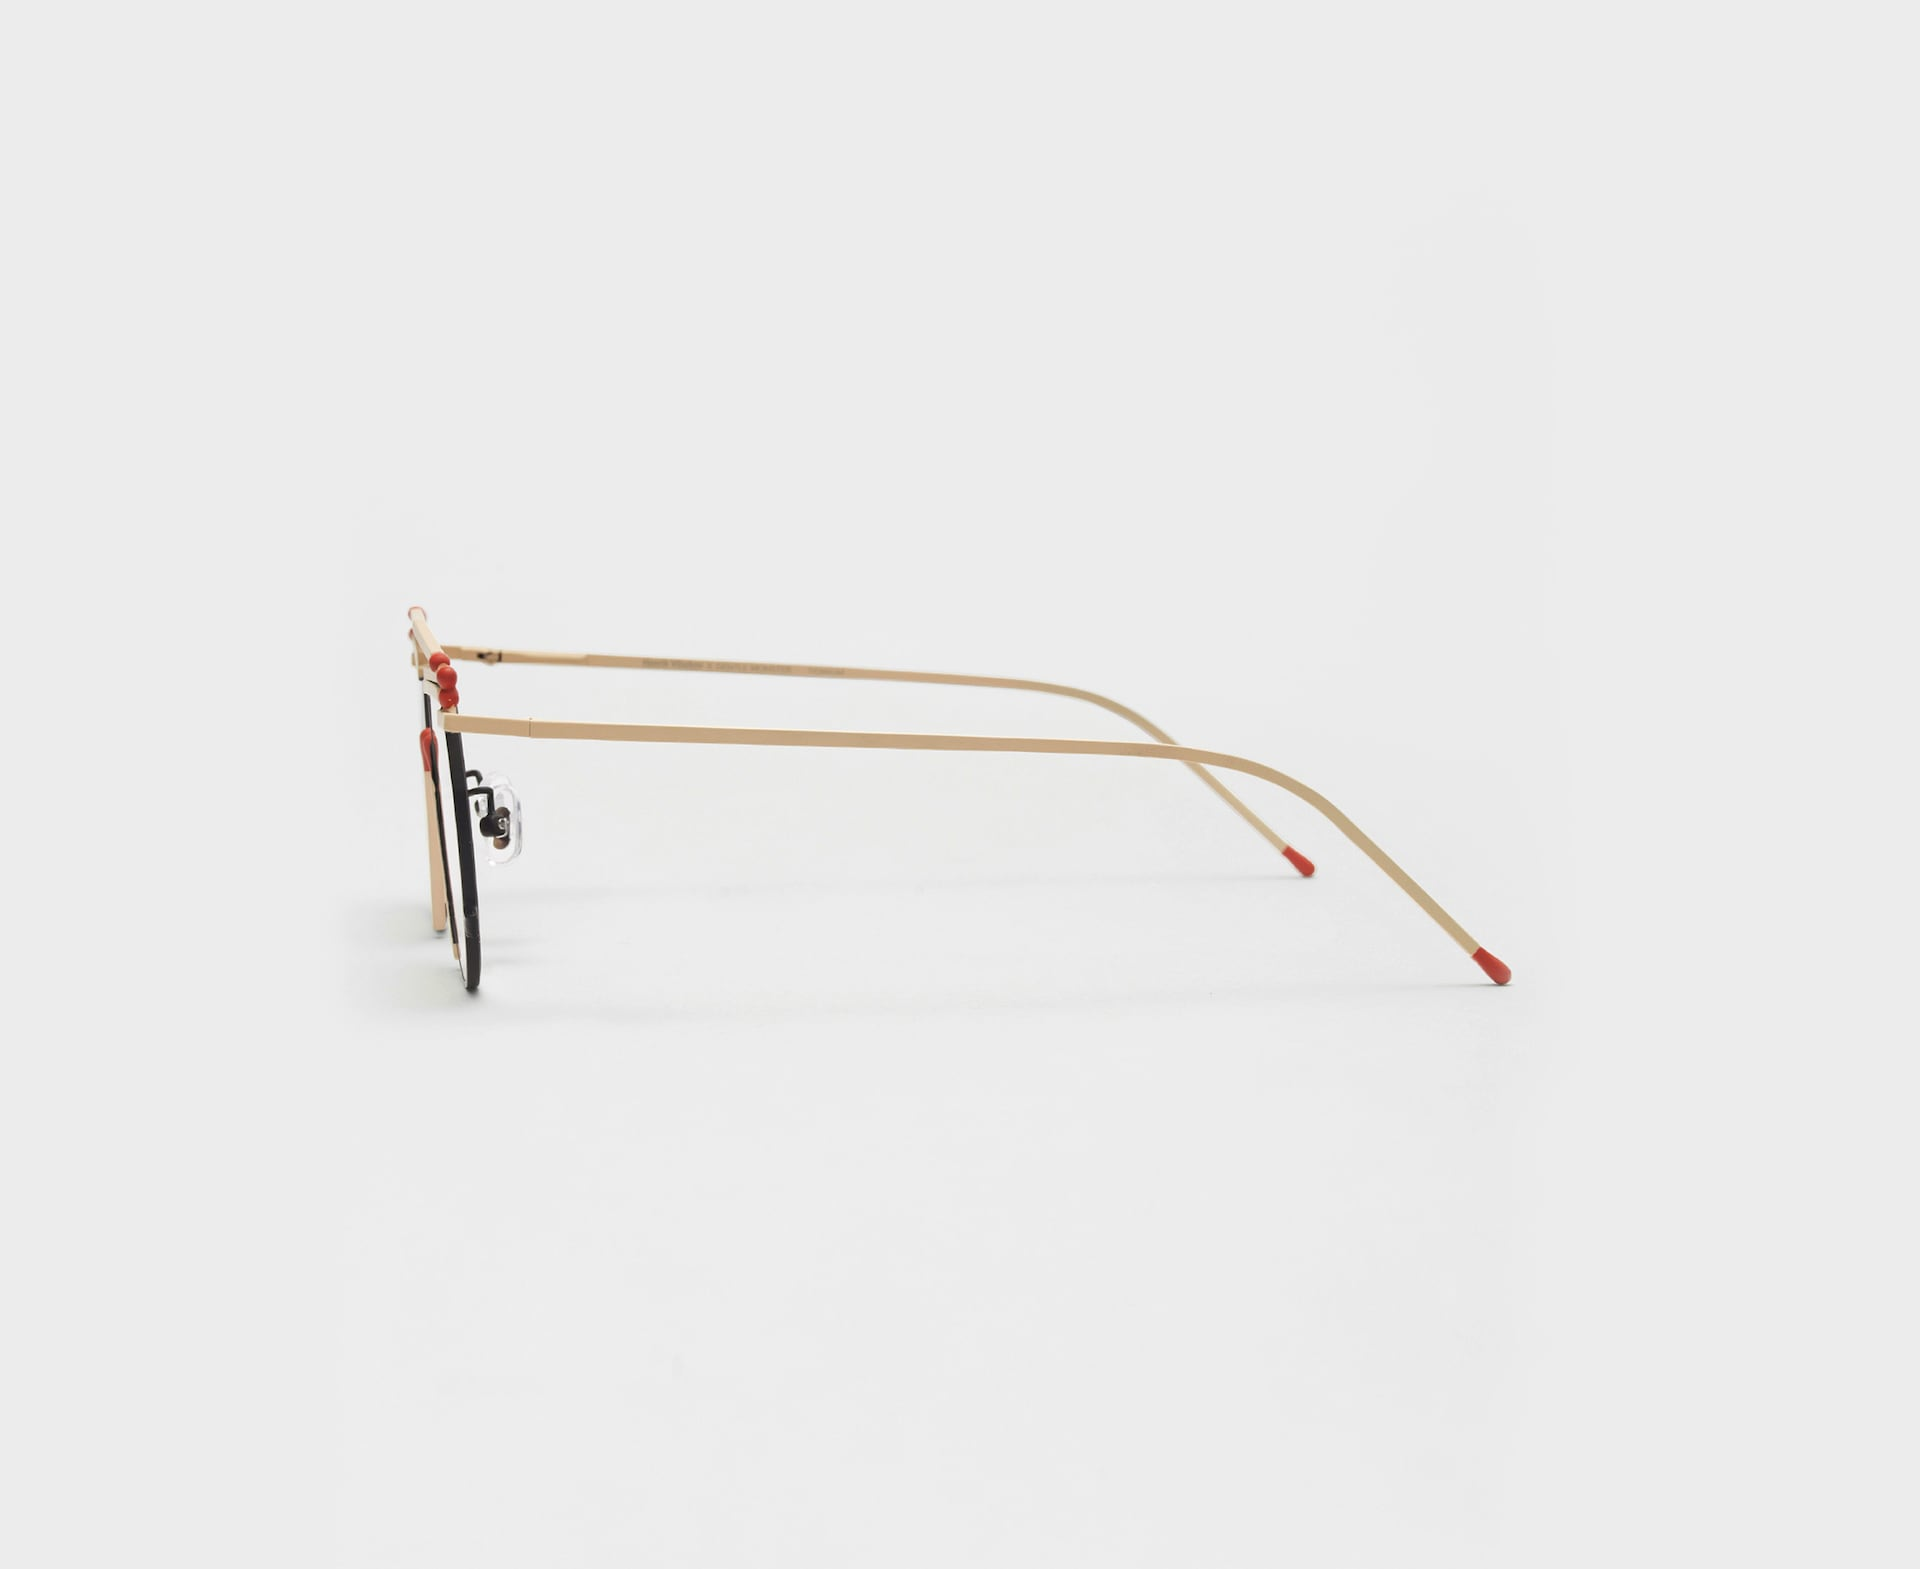 GENTLE MONSTER - HENRIK VIBSKOV - MATCHES GLASSES MA1